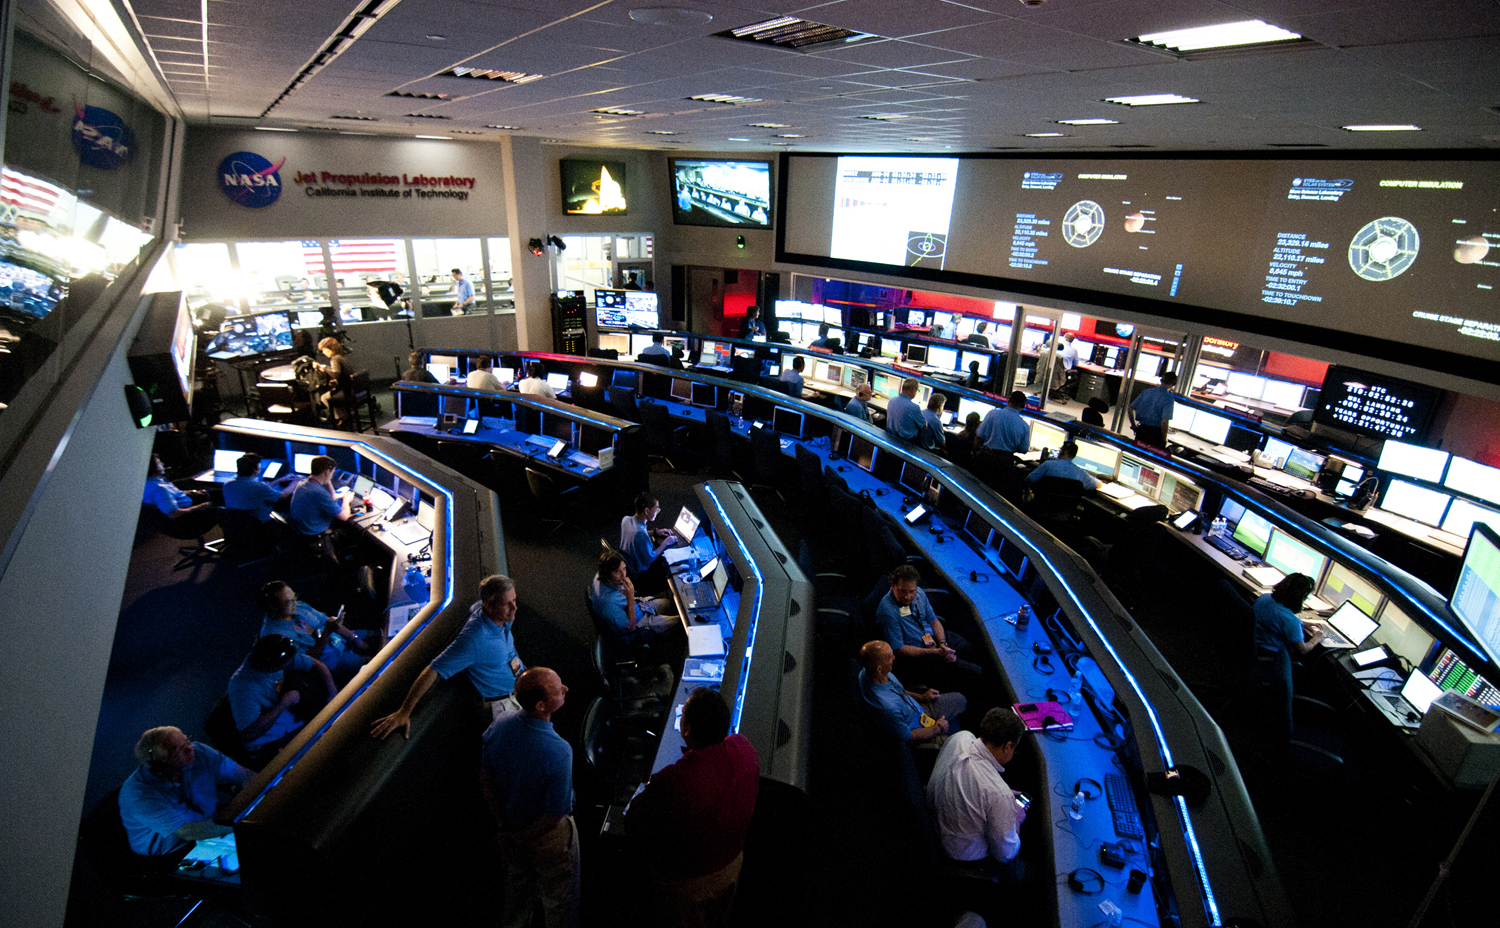 The Space Flight Operations Center, a National Historic Landmark, has been operational and staffed every day since 1964.  Here engineers send and receive commands for any spacecraft in, and beyond, our Solar System.